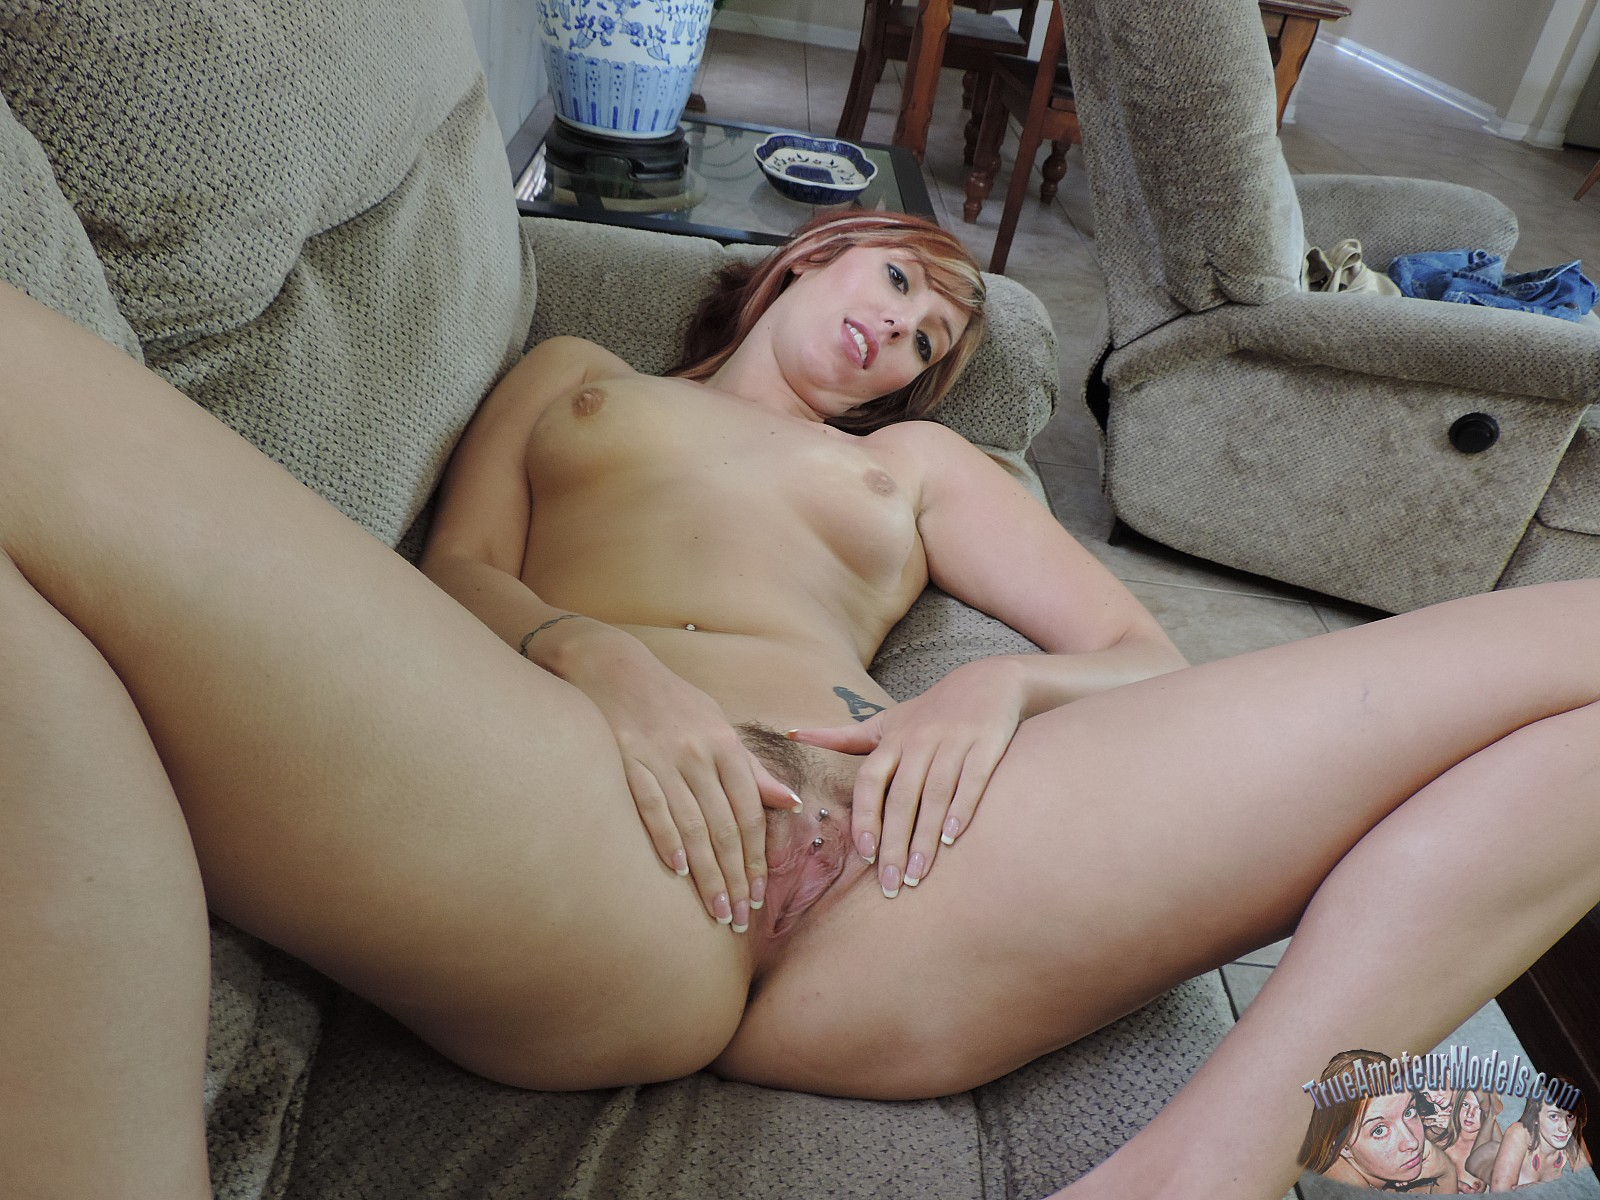 lauren phillips pics